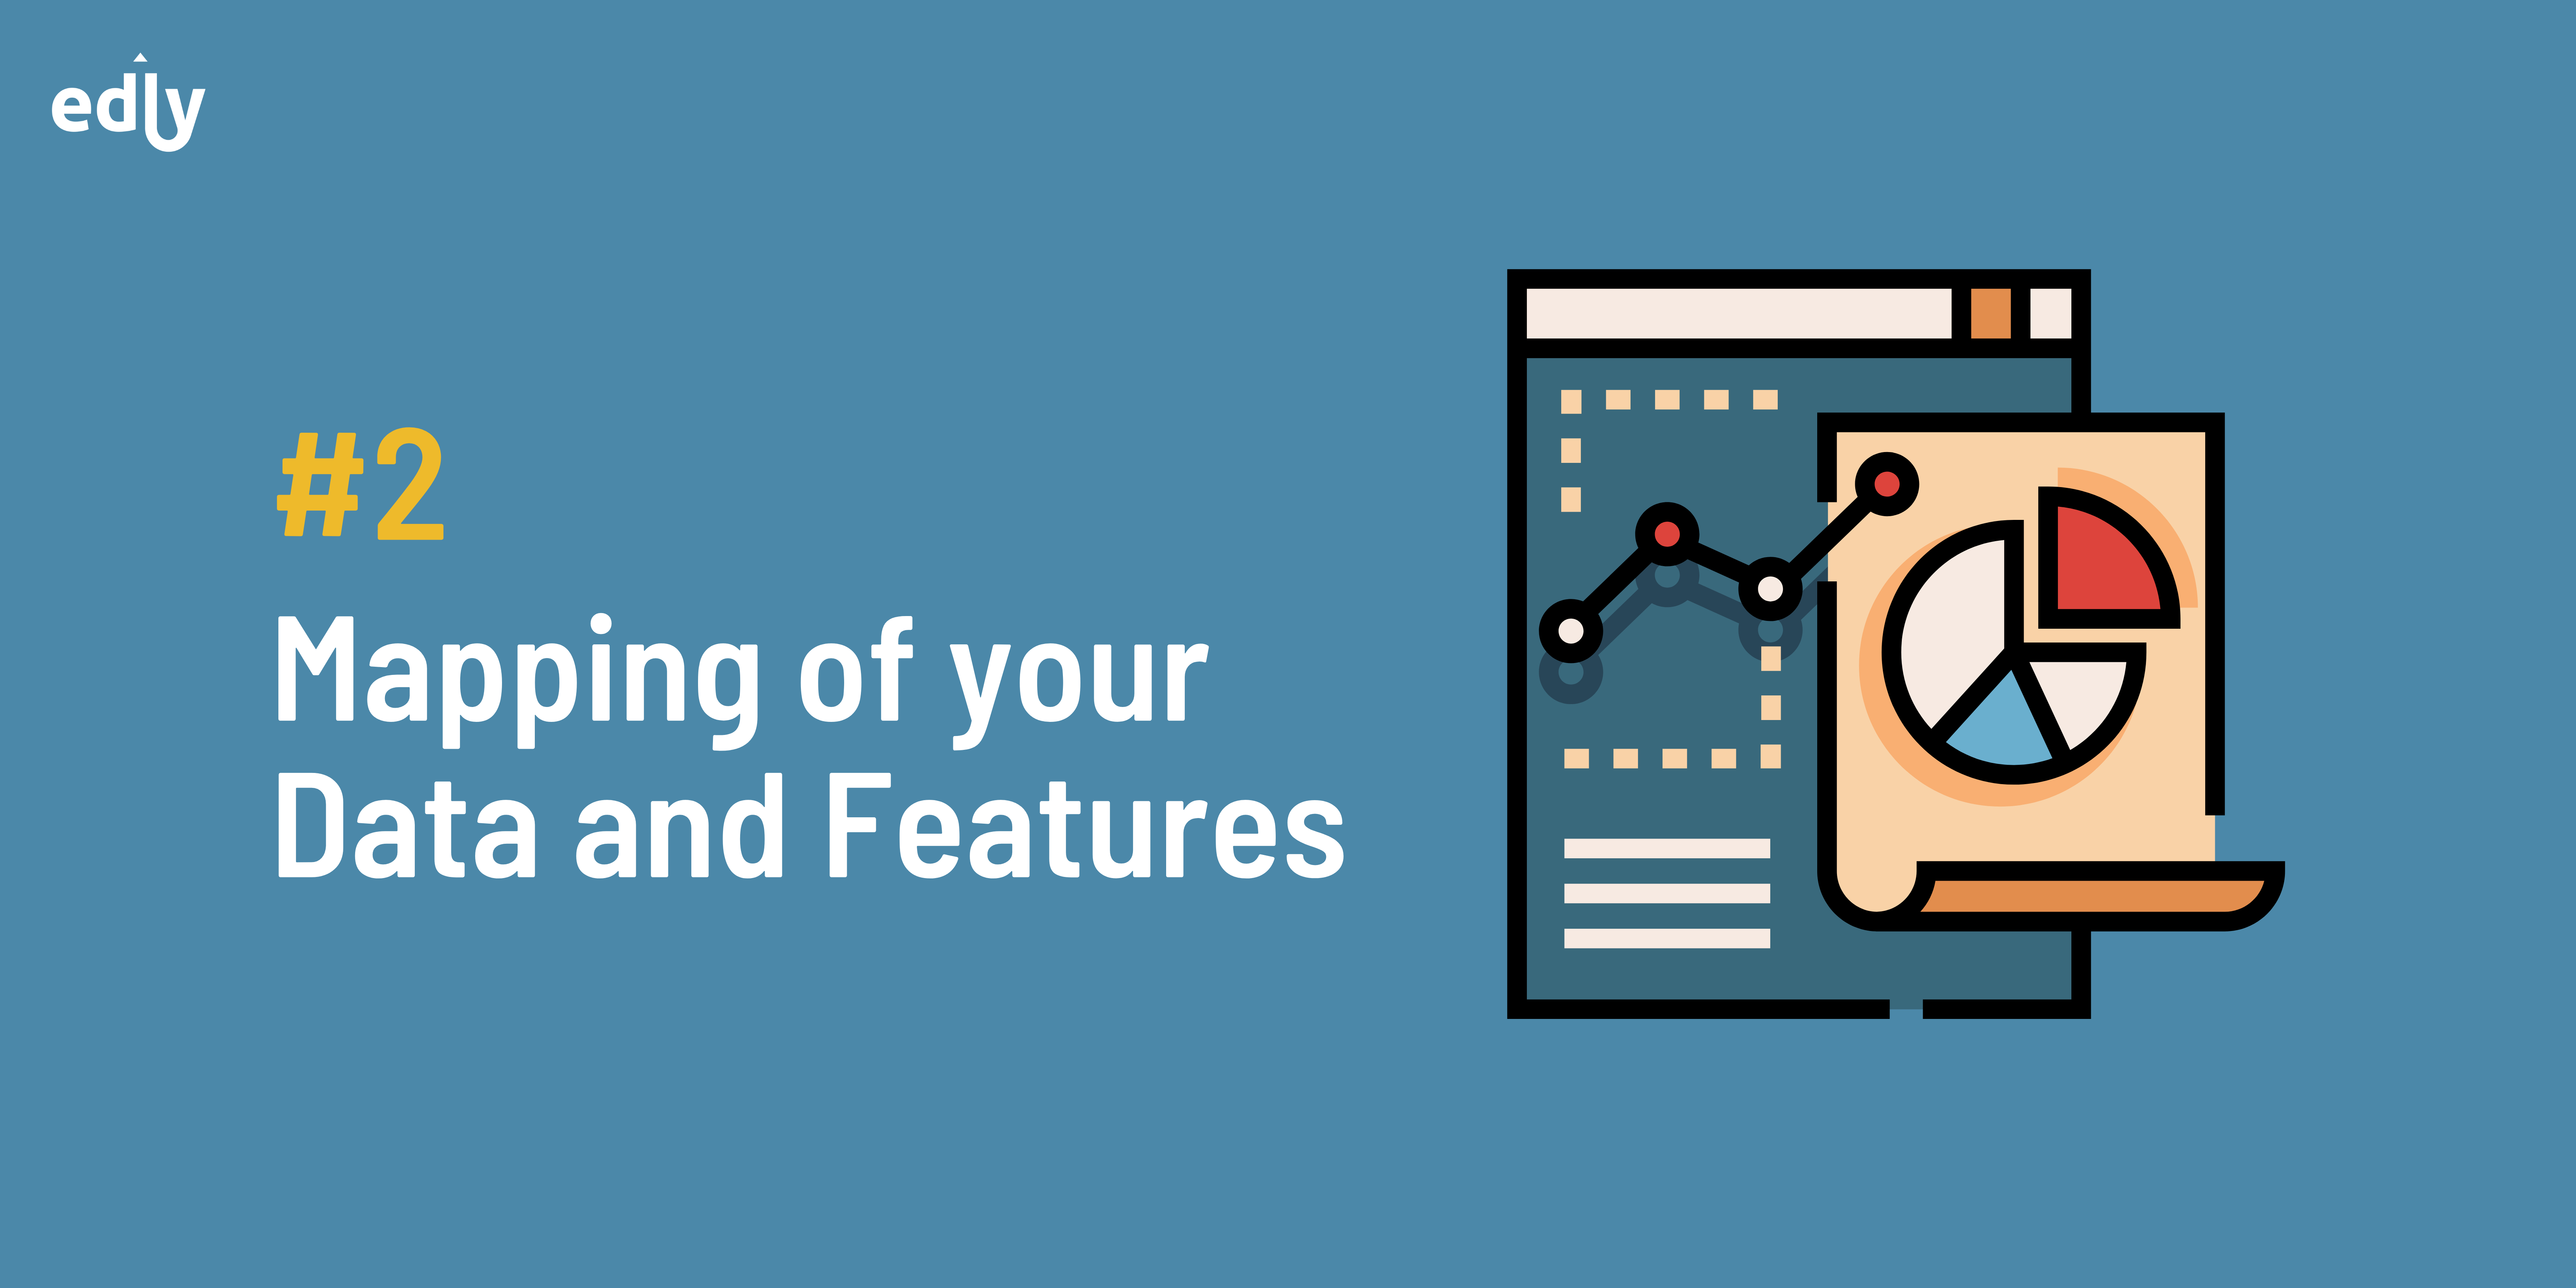 Mapping of your Data and Features